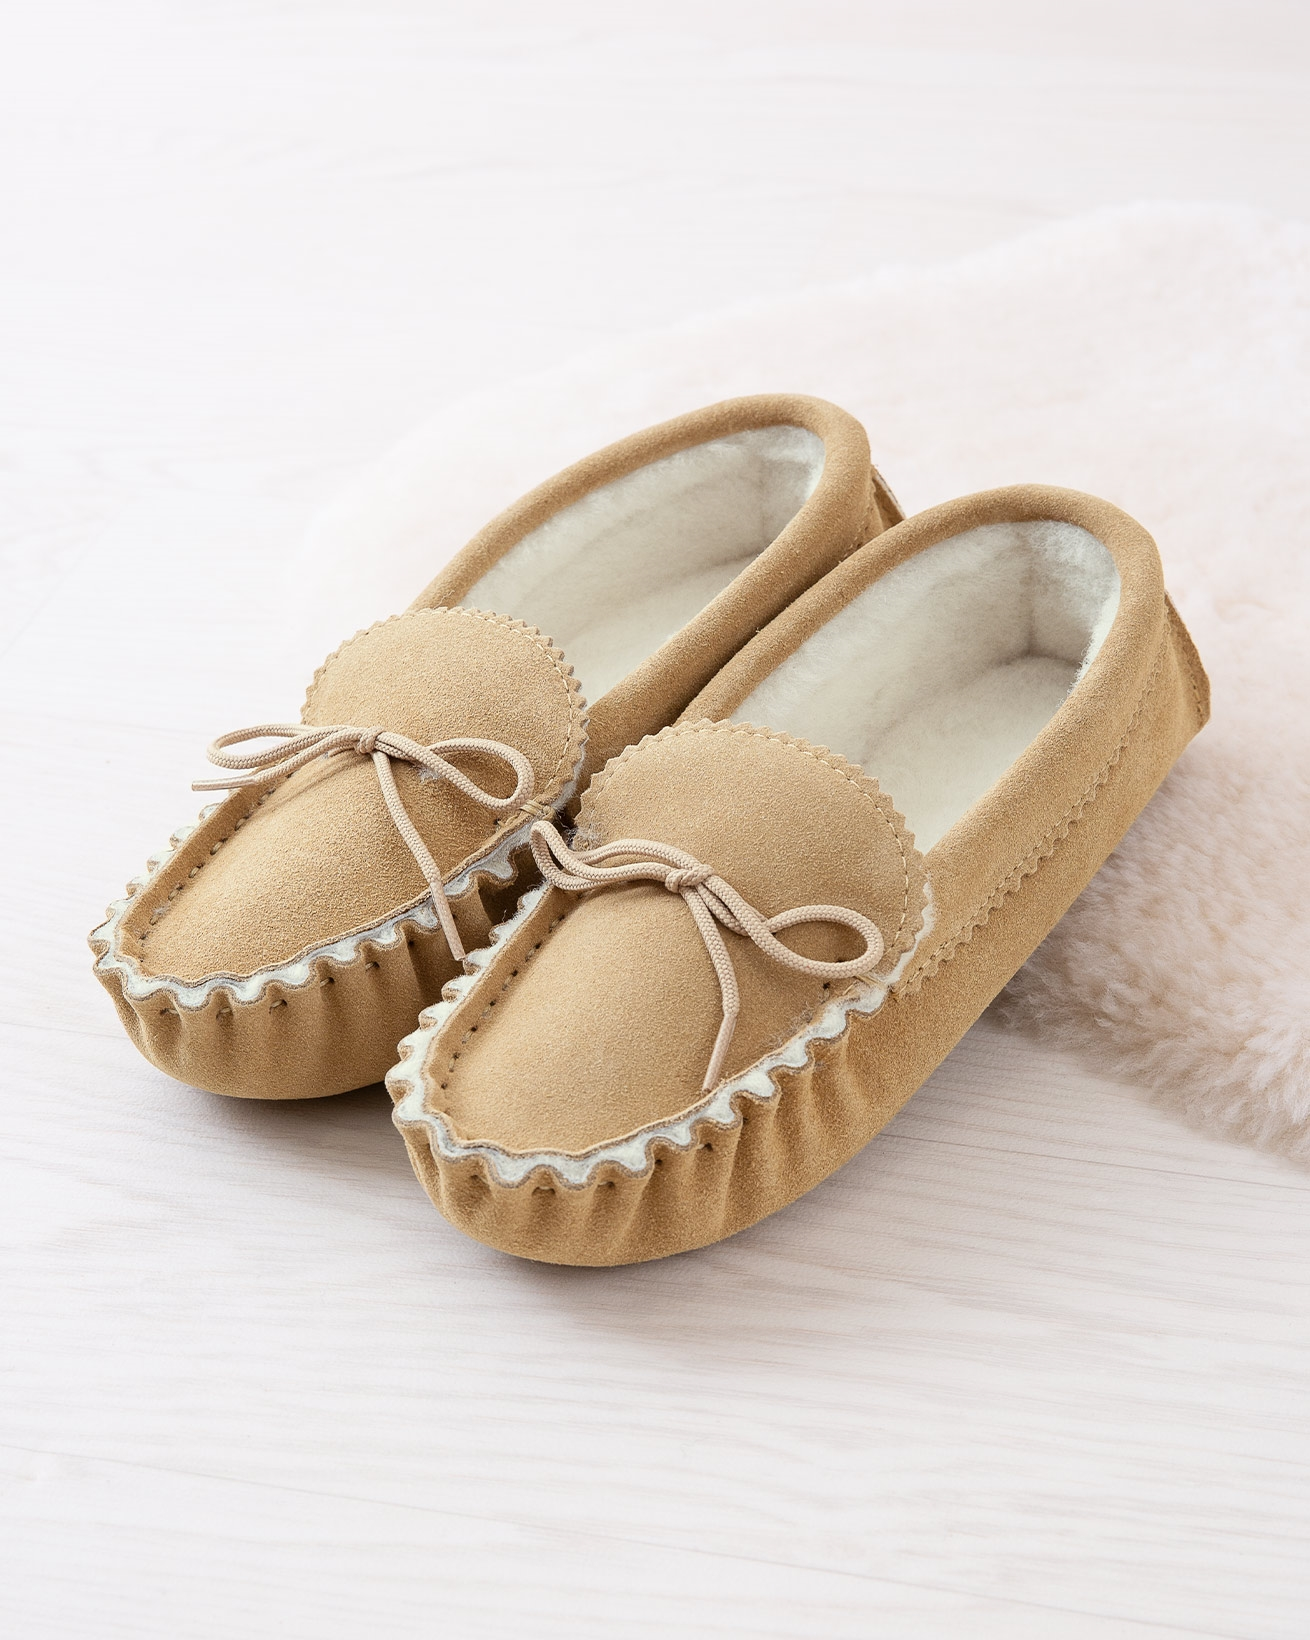 2150_loafer-moccasin-soft-sole_camel_lifestyle_lfs.jpg